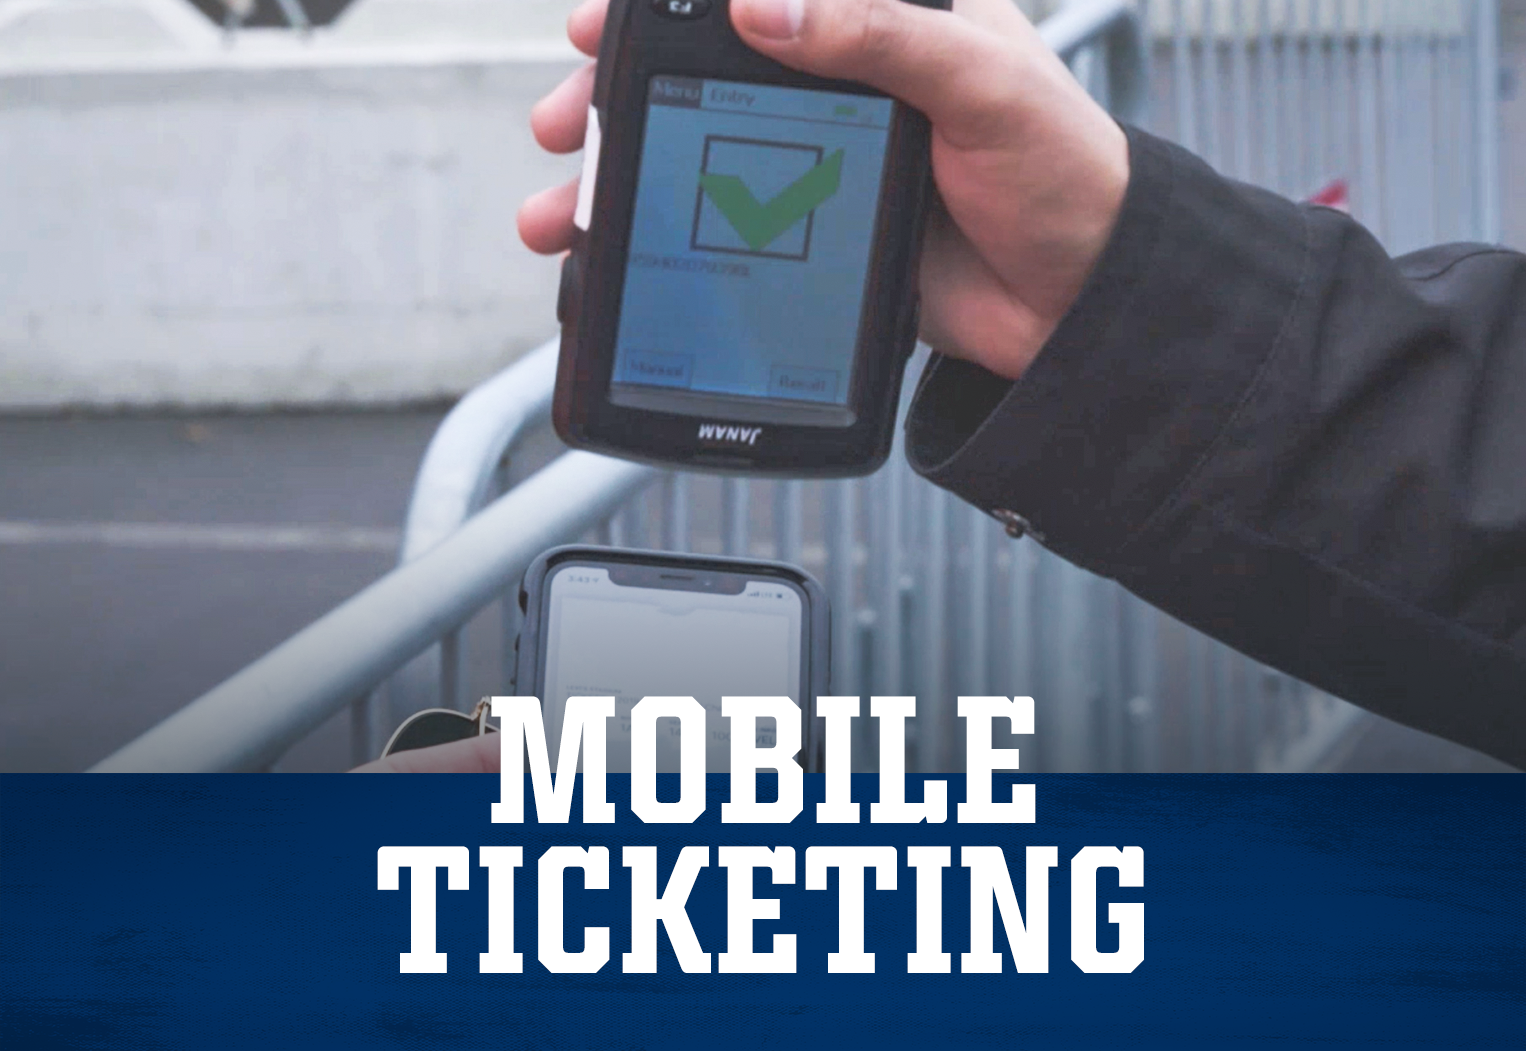 Indianapolis Colts Gameday Mobile Ticketing